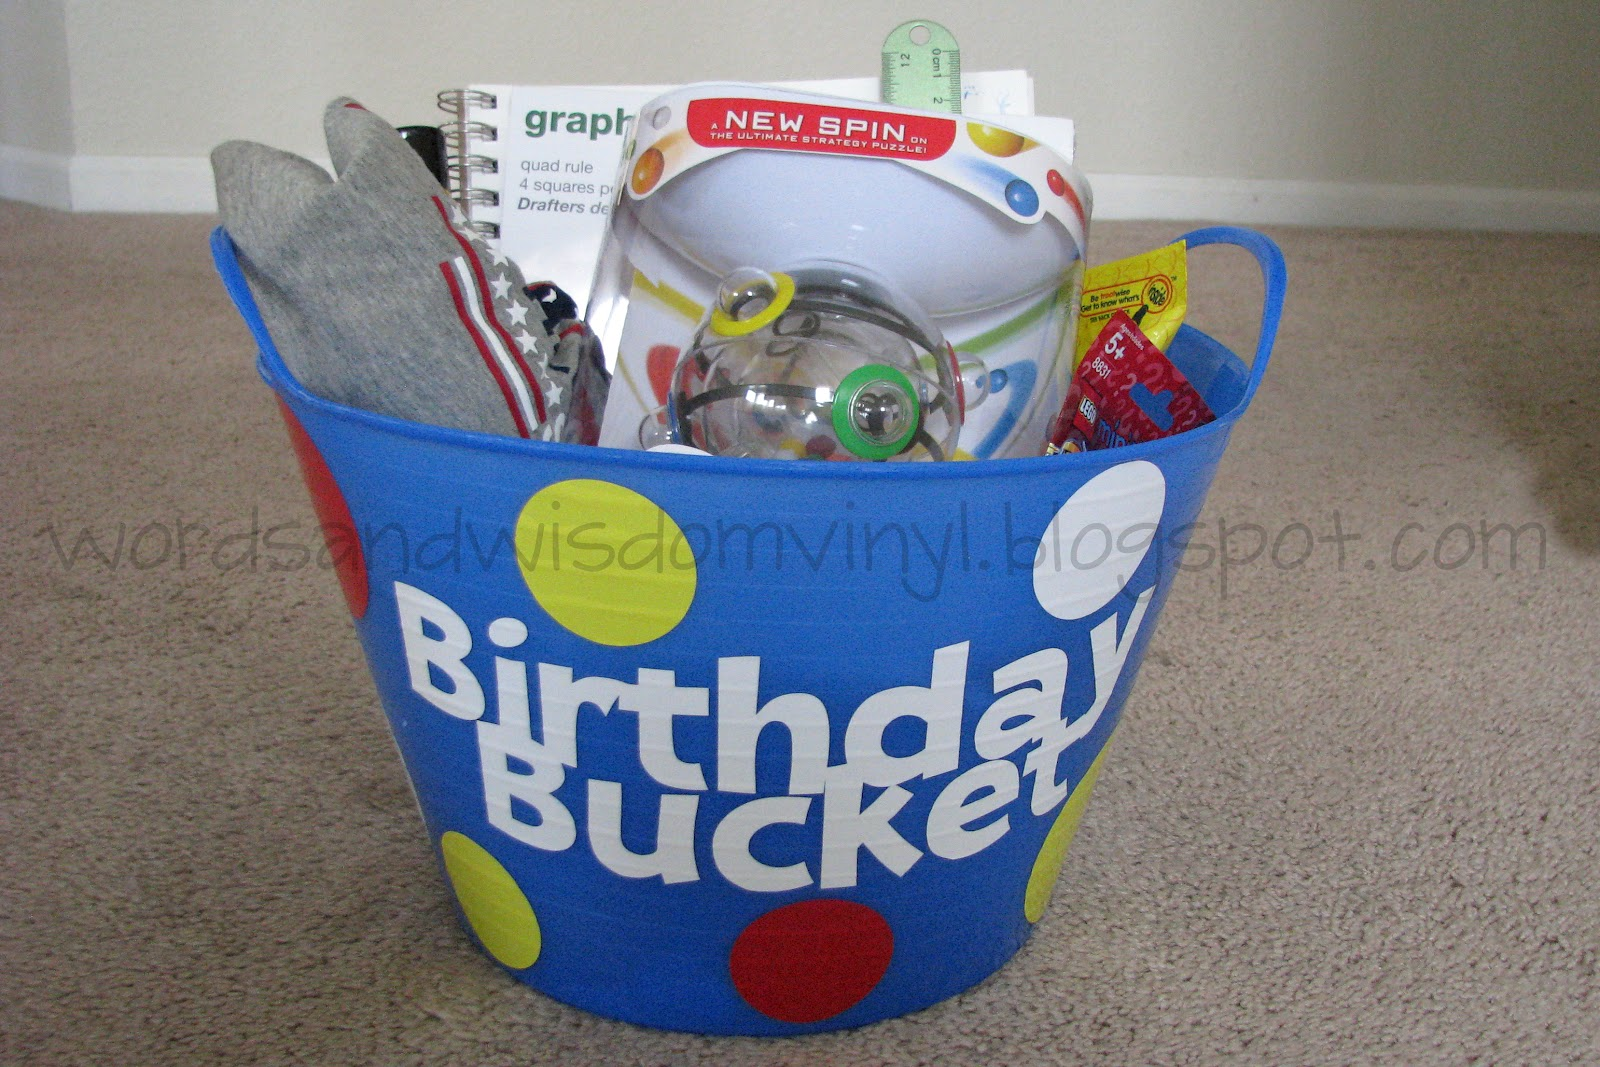 Here Is The Bucket My Son Got Today In It Was A New T Shirt Game Lego Mini Figure We Love These Our House Some Glow Sticks Silly String